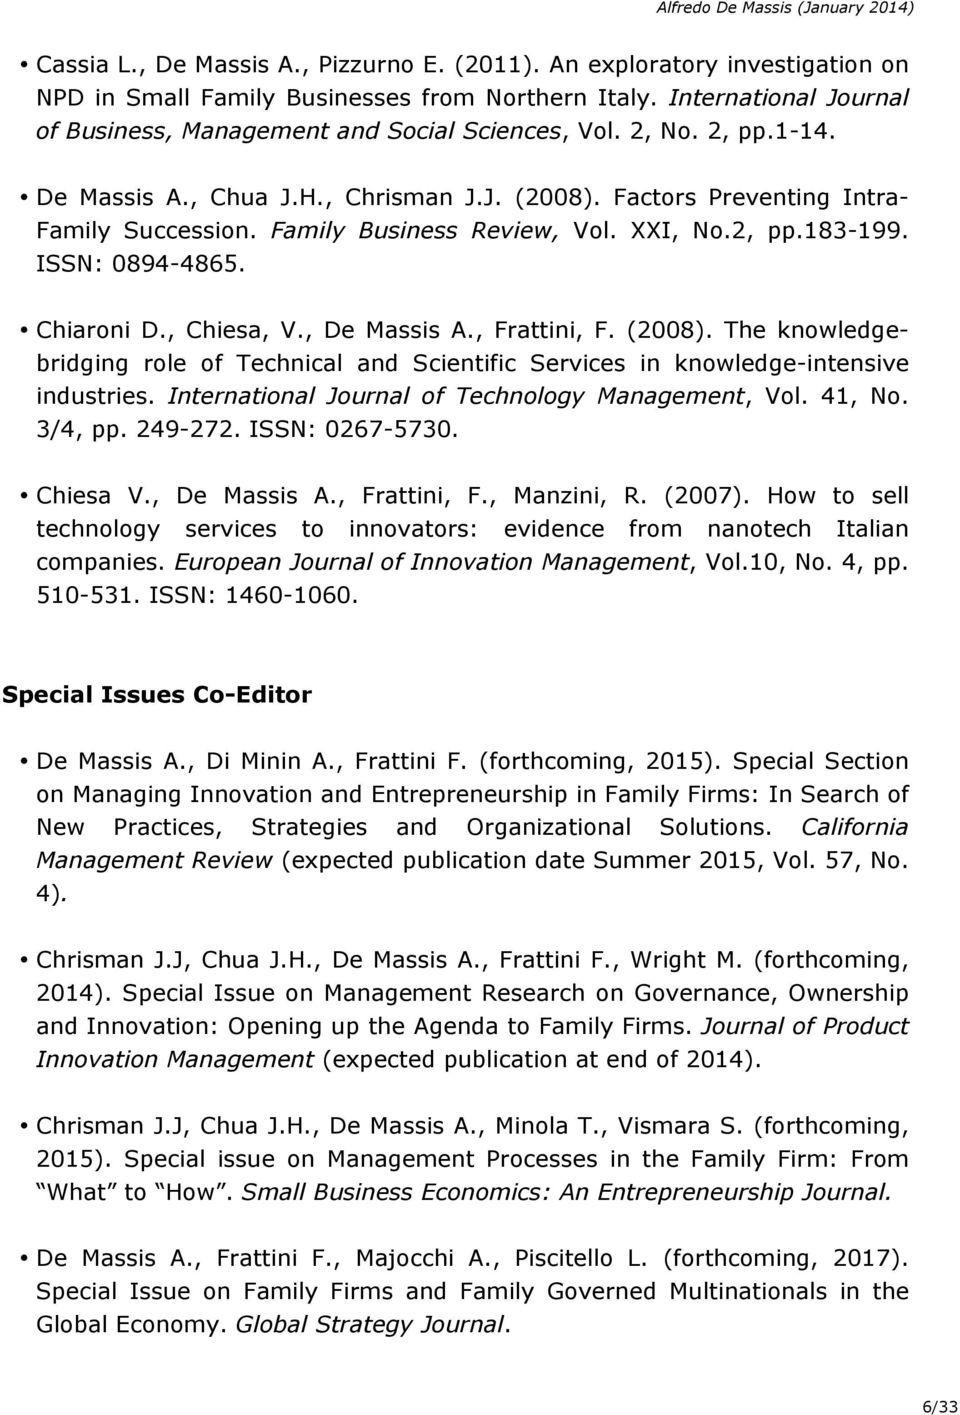 , Chiesa, V., De Massis A., Frattini, F. (2008). The knowledgebridging role of Technical and Scientific Services in knowledge-intensive industries. International Journal of Technology Management, Vol.